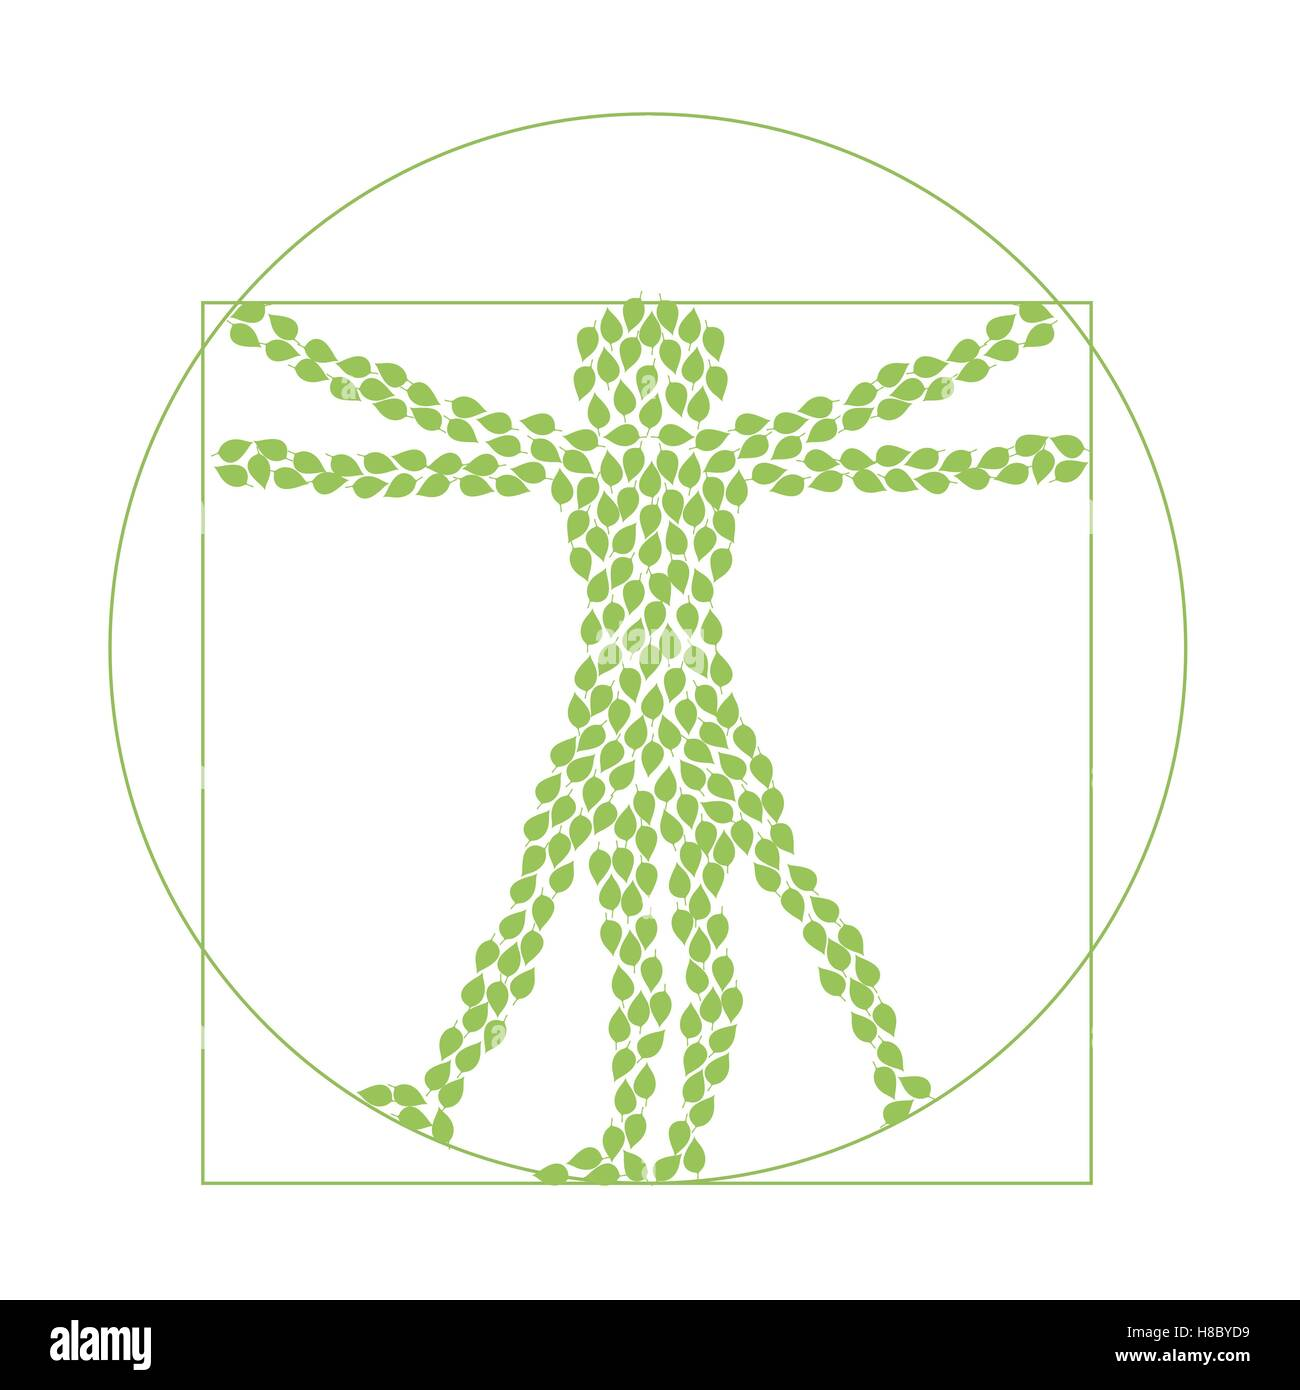 Man s silhouette from green leaves. vector logo sign concept illustration. Vector logo template. Ecological and - Stock Vector